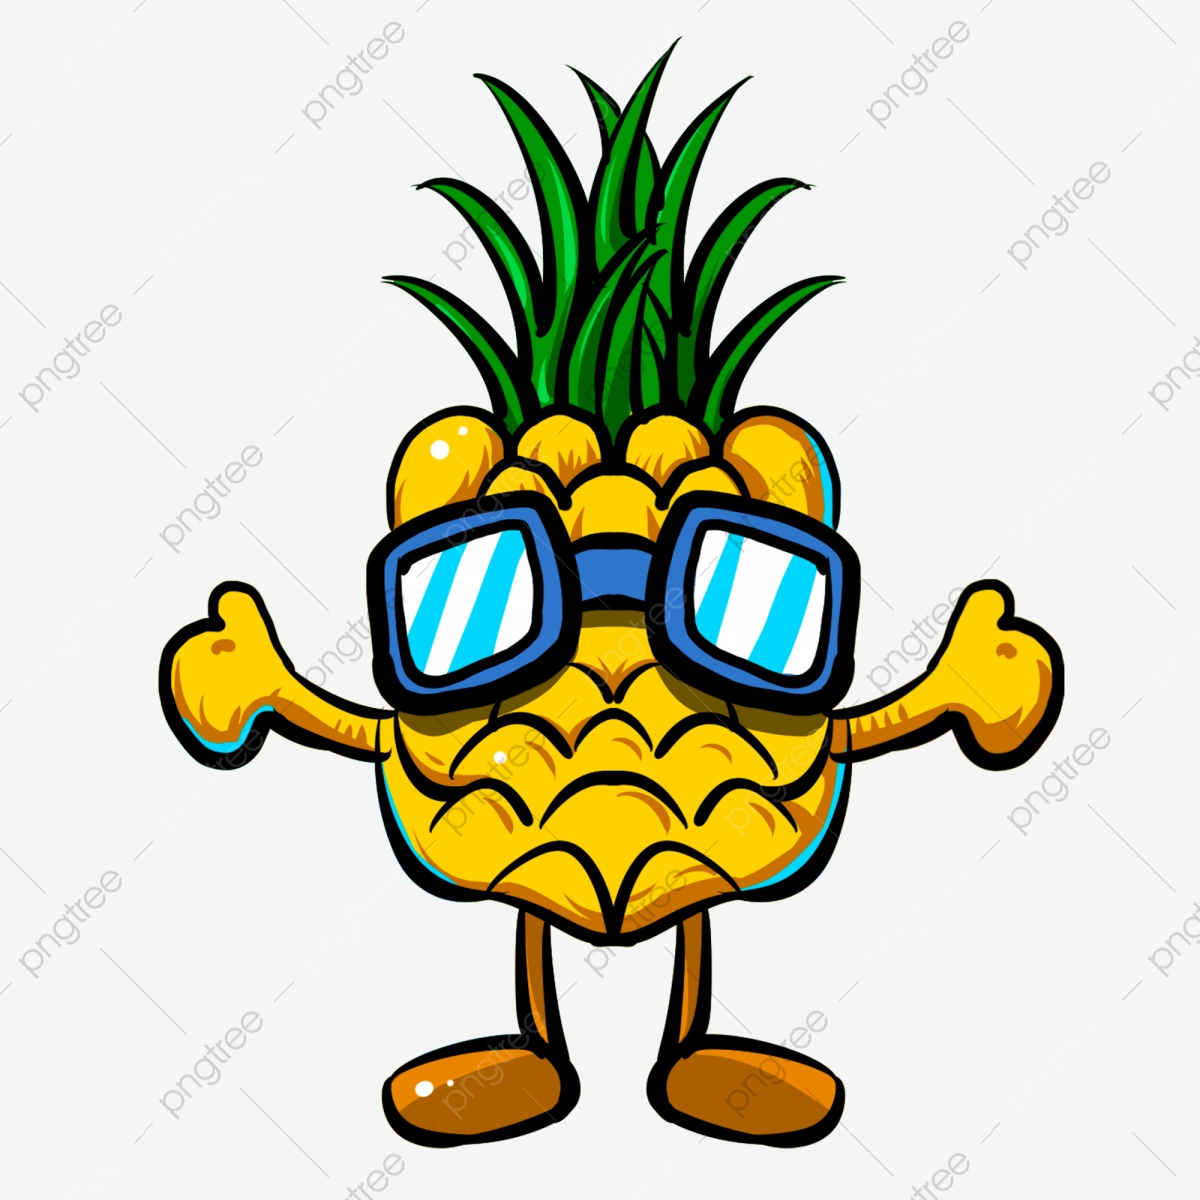 Wearing Sunglasses Pineapple Caring, Sunglasses Vector.